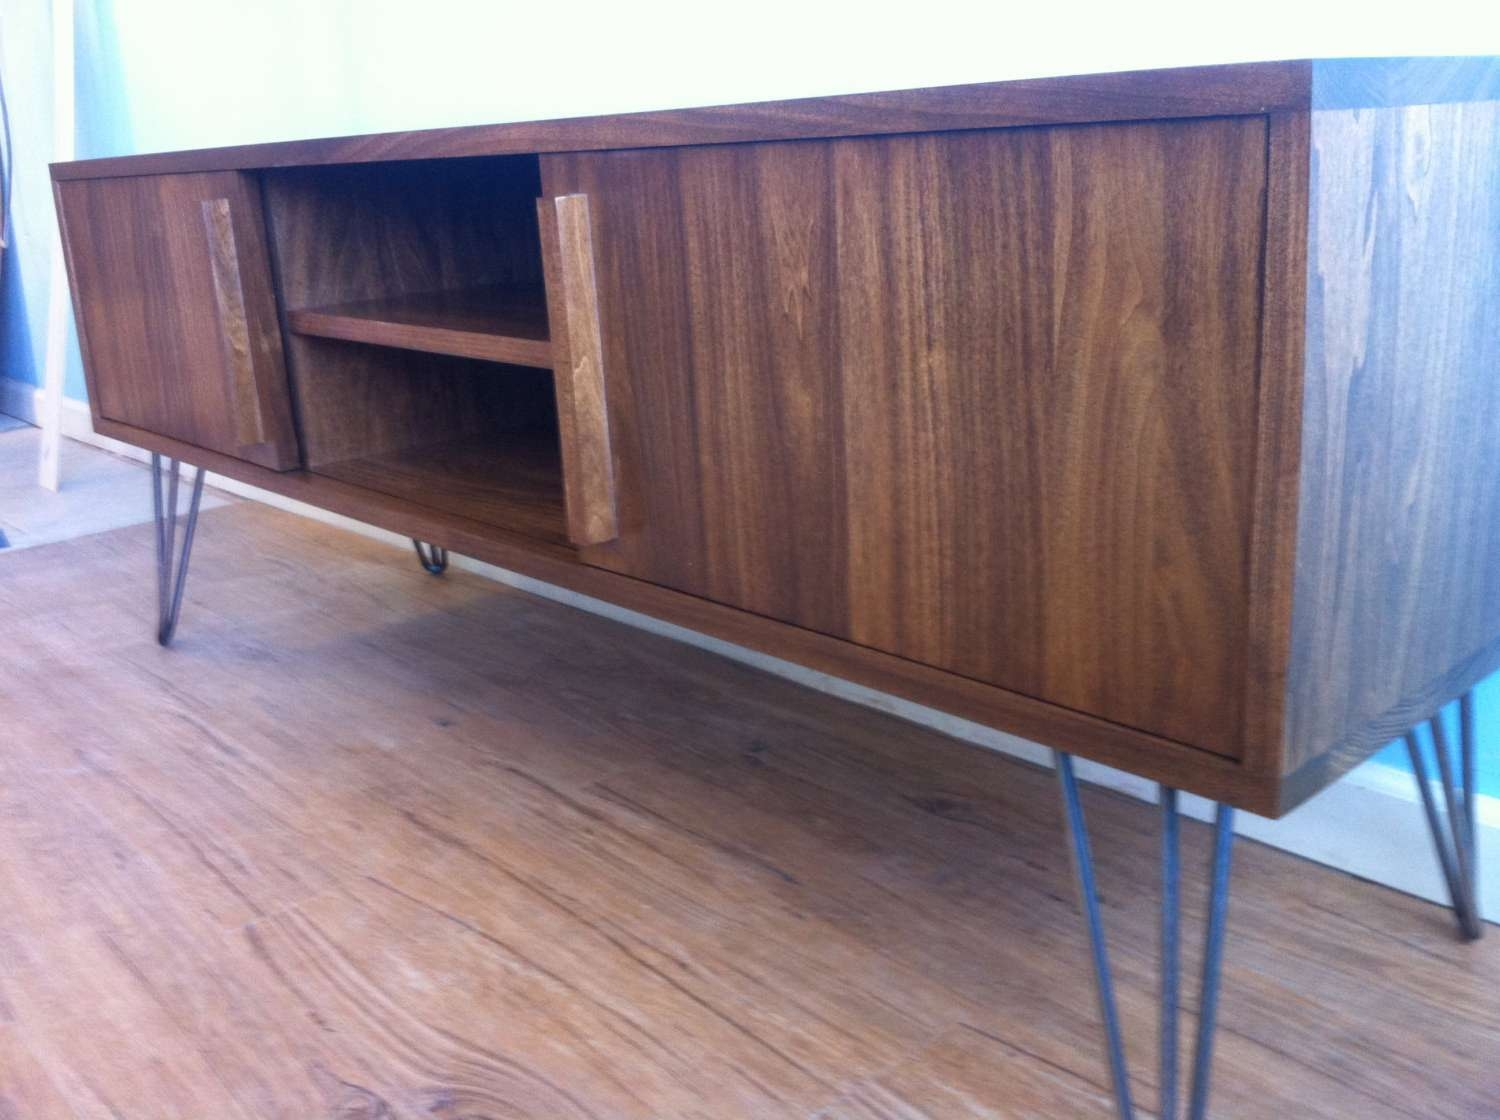 Hairpin Leg Tv Stand Intended For Hairpin Leg Tv Stands (View 7 of 15)